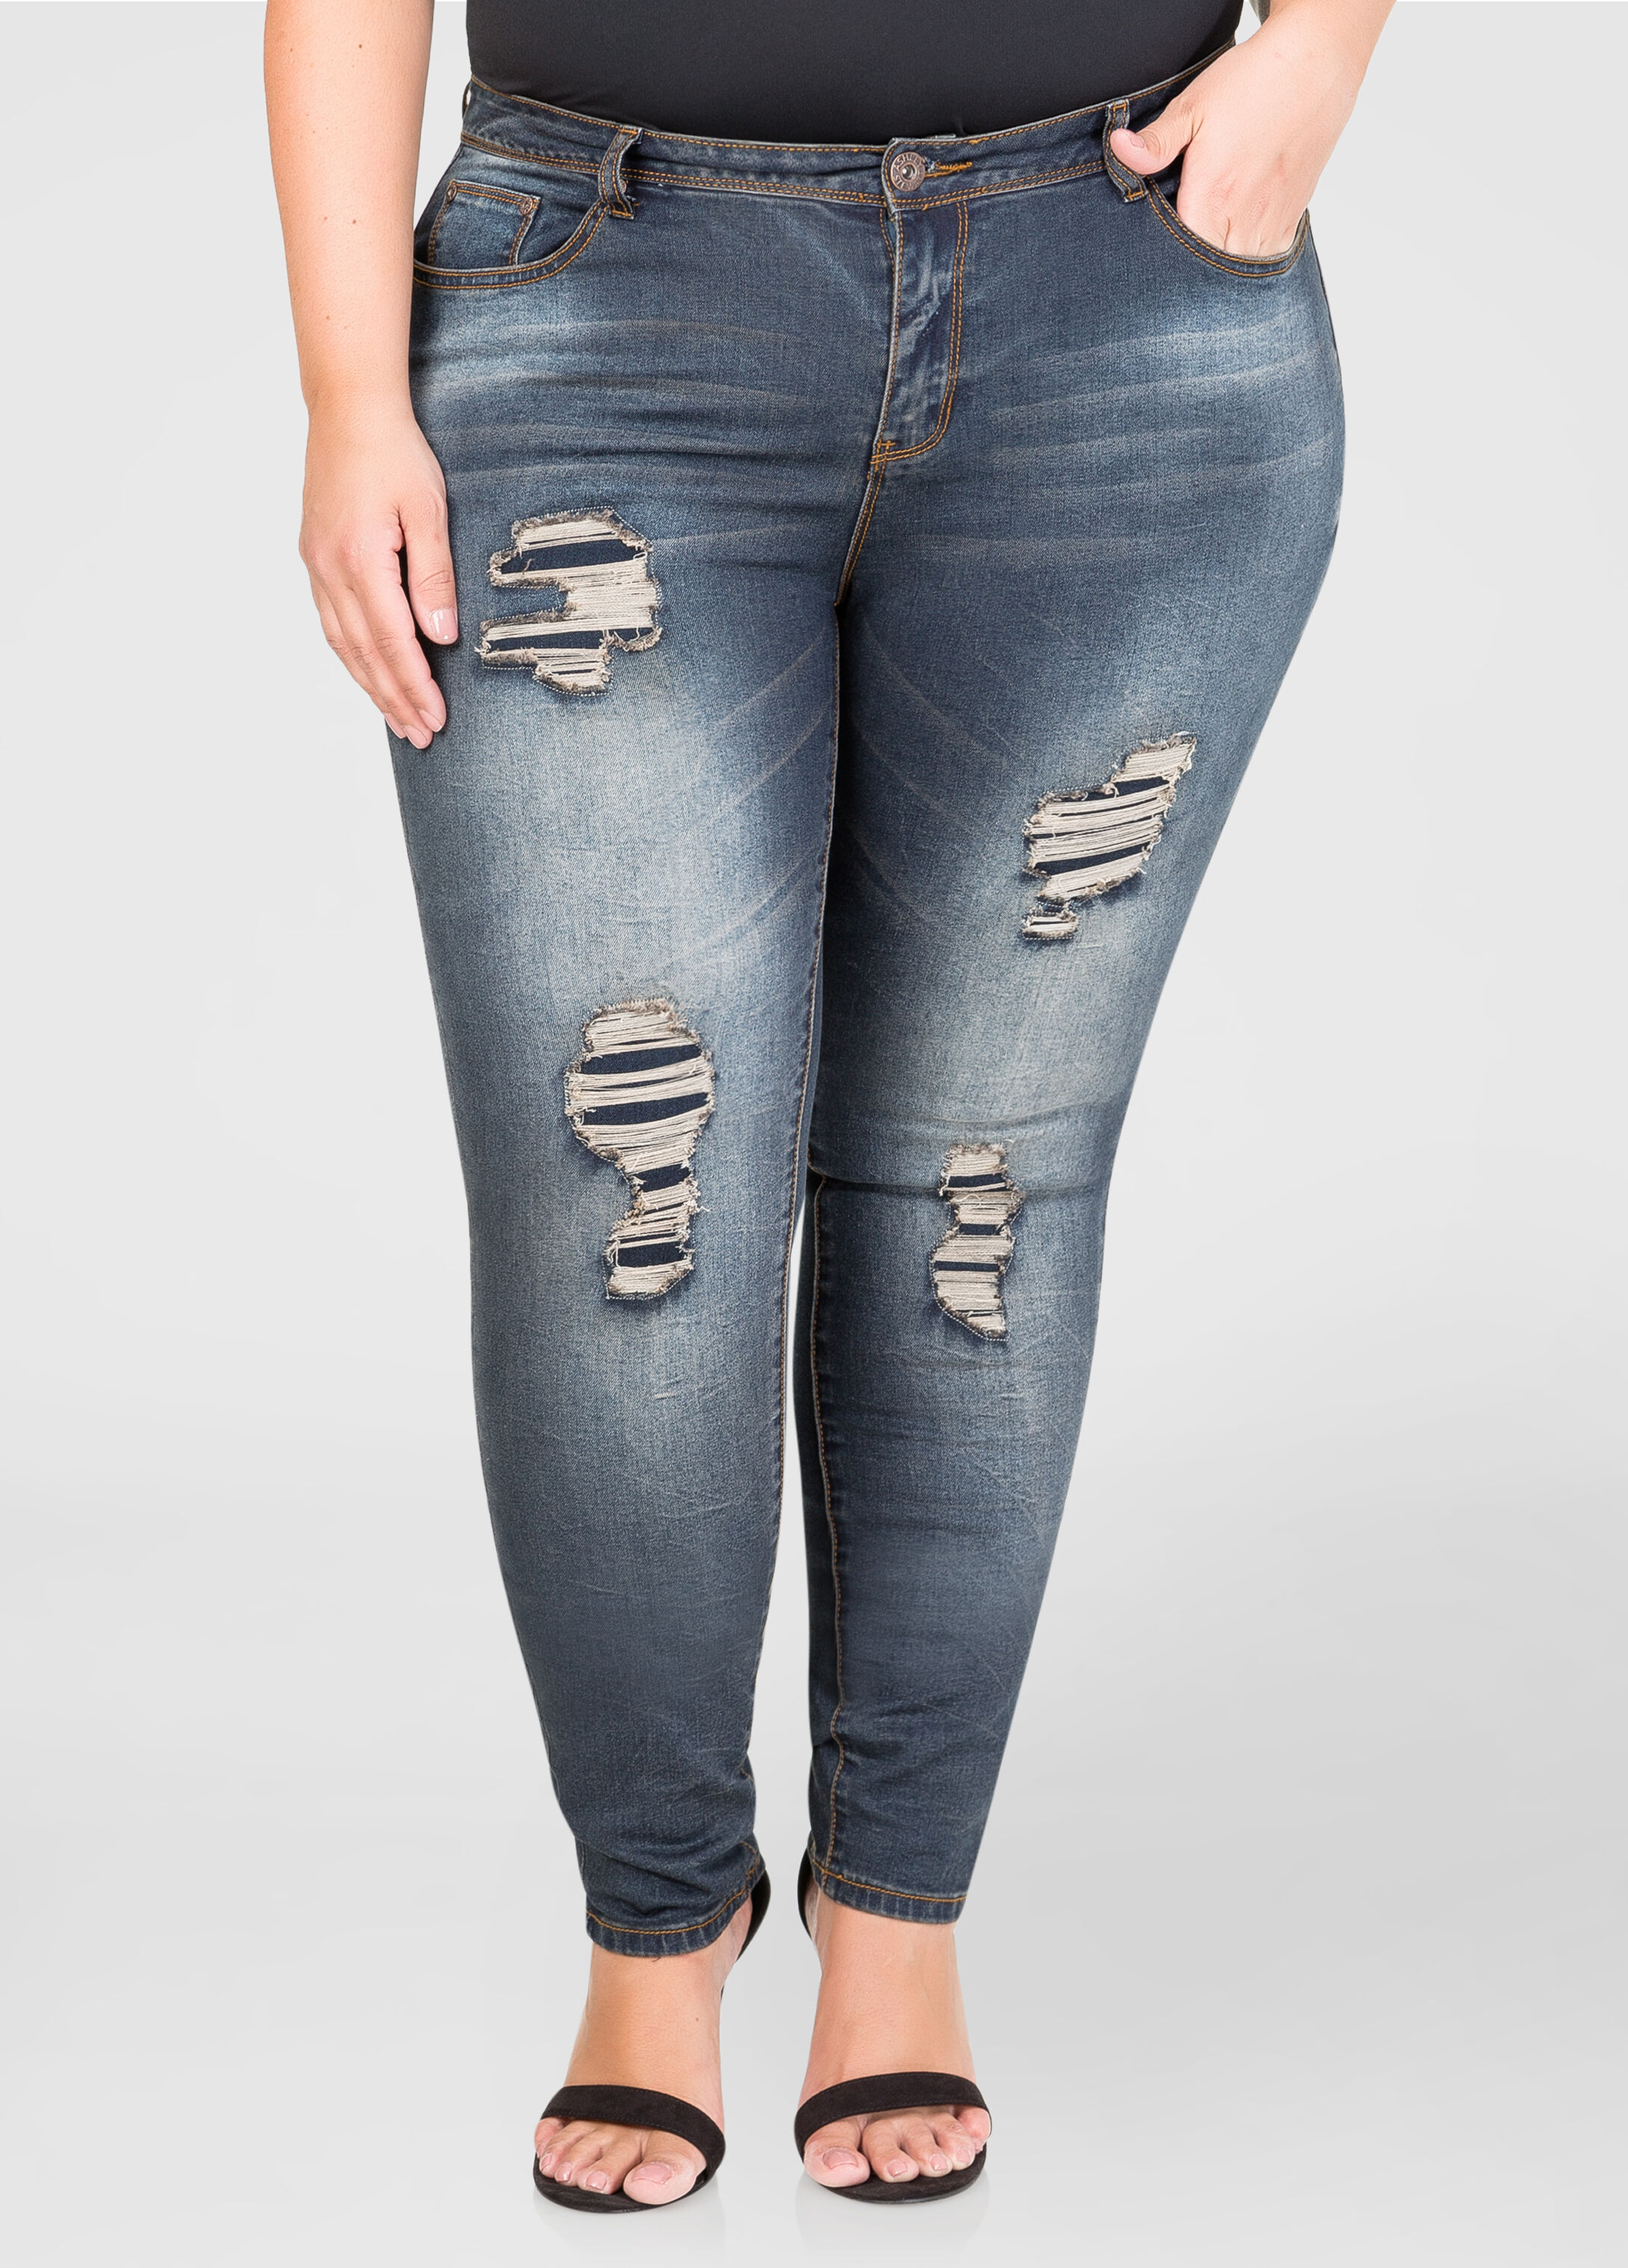 Destructed Bum Lifter Skinny Jean